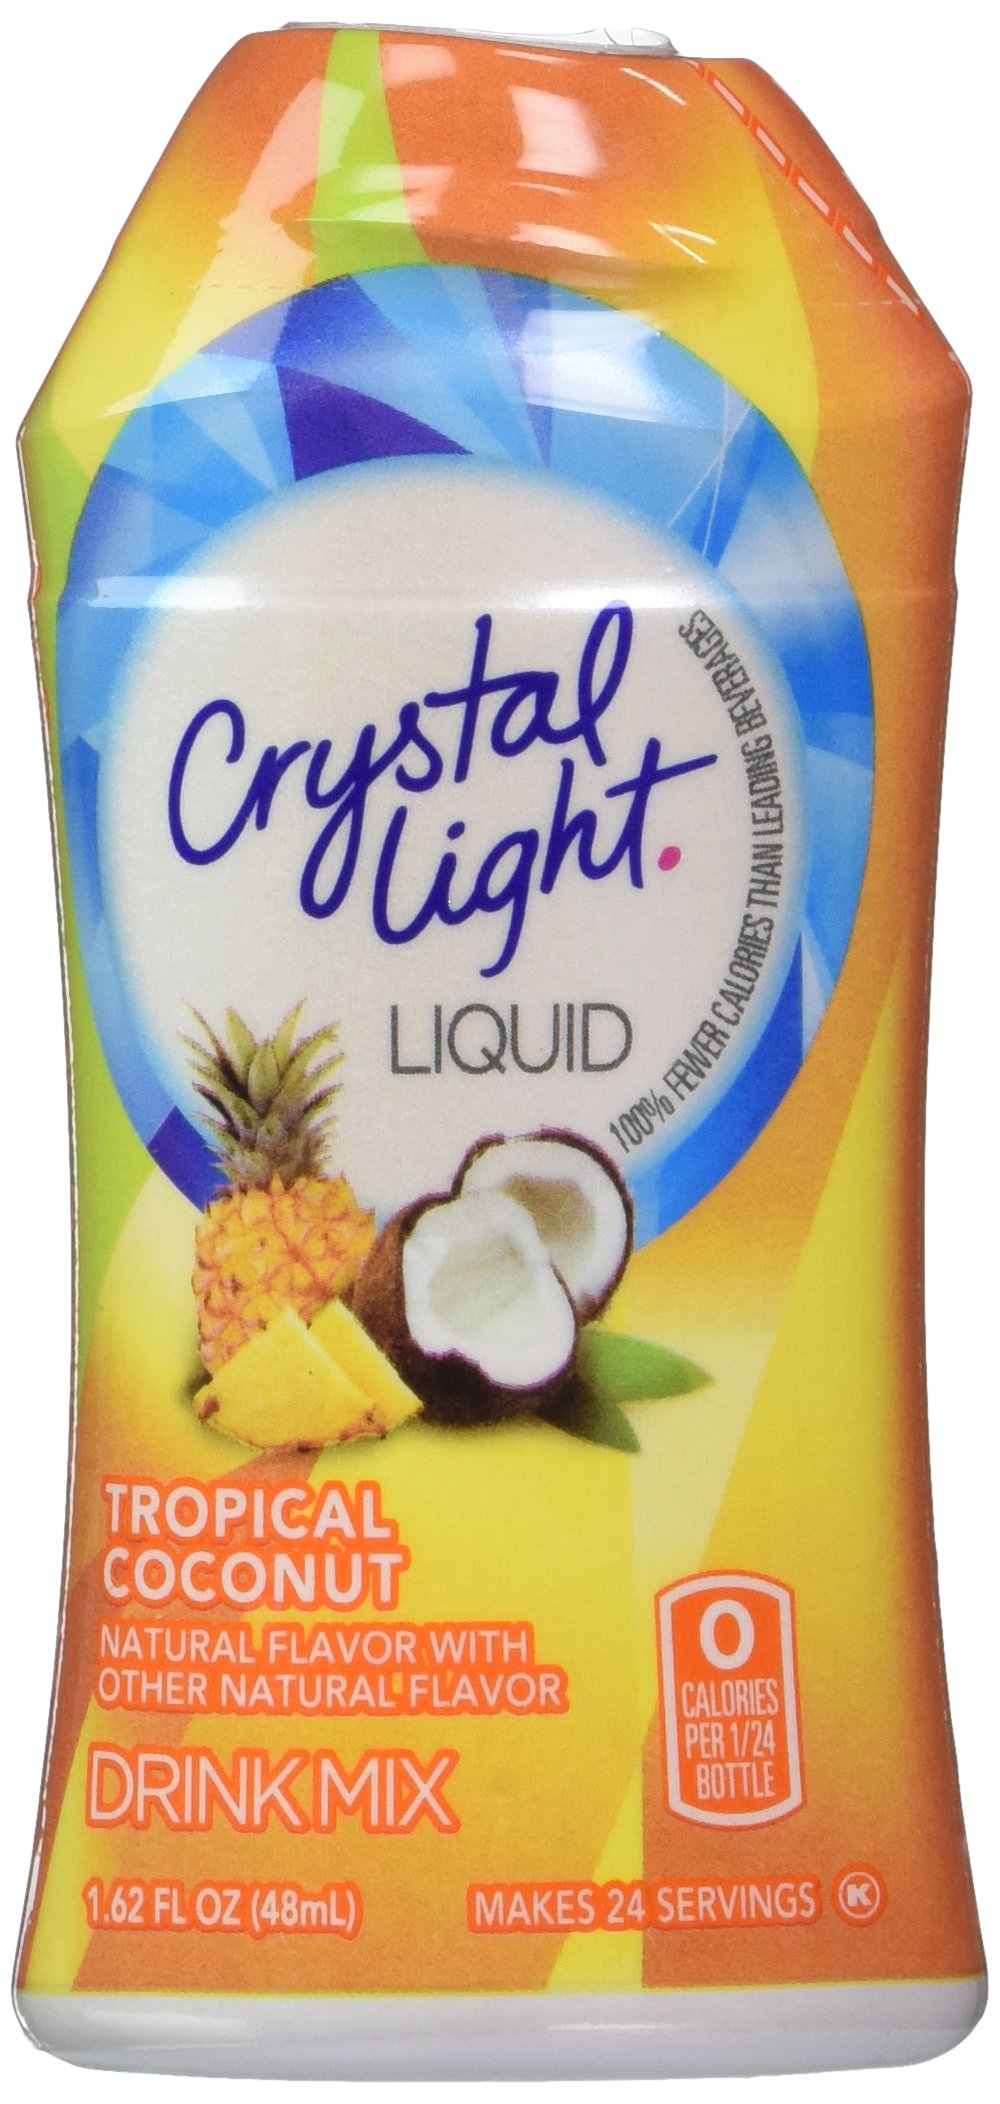 Crystal Light Liquid Tropical Coconut 1.62 OZ (Pack of 12)